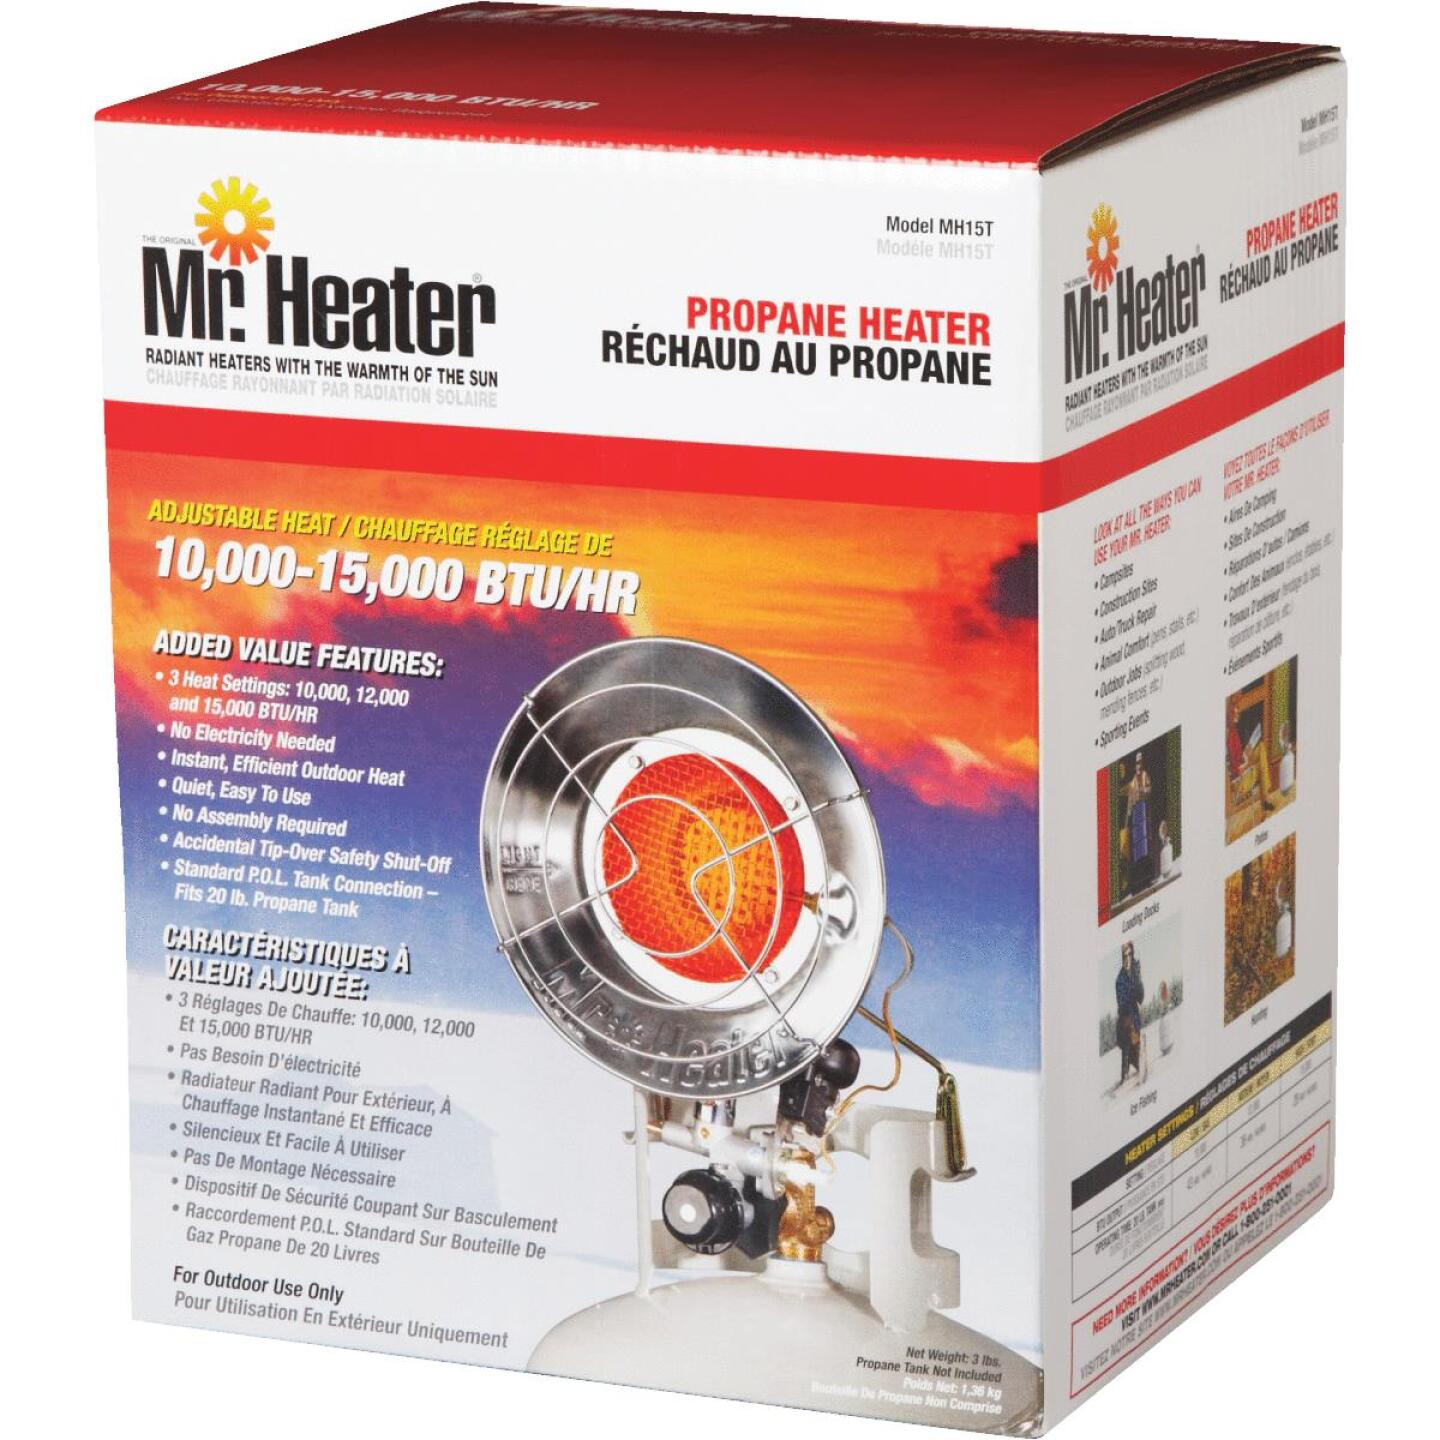 MR. HEATER 15,000 BTU Radiant Single Tank Top Propane Heater Image 2